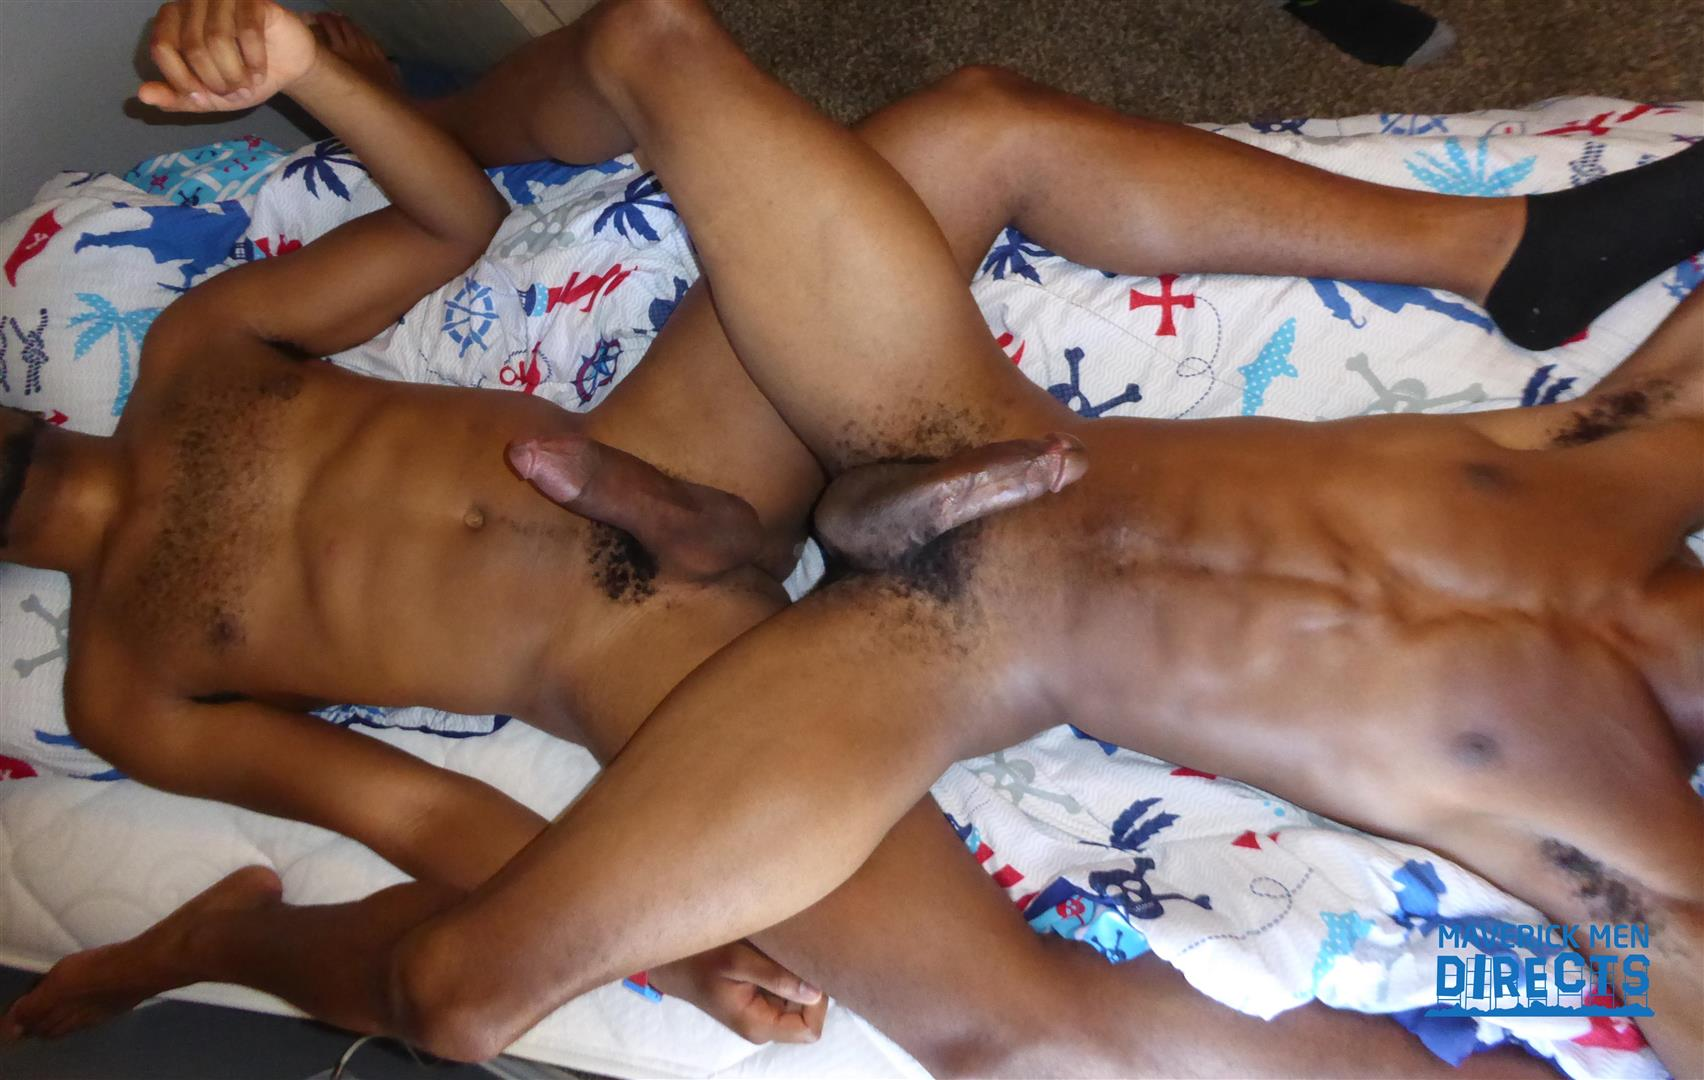 Maverick-Men-Directs-Two-Big-Black-Dicks-Fucking-A-White-Boys-Ass-Bareback-08 Two Big Black Cocks Bareback Assaulting A Jocks White Ass